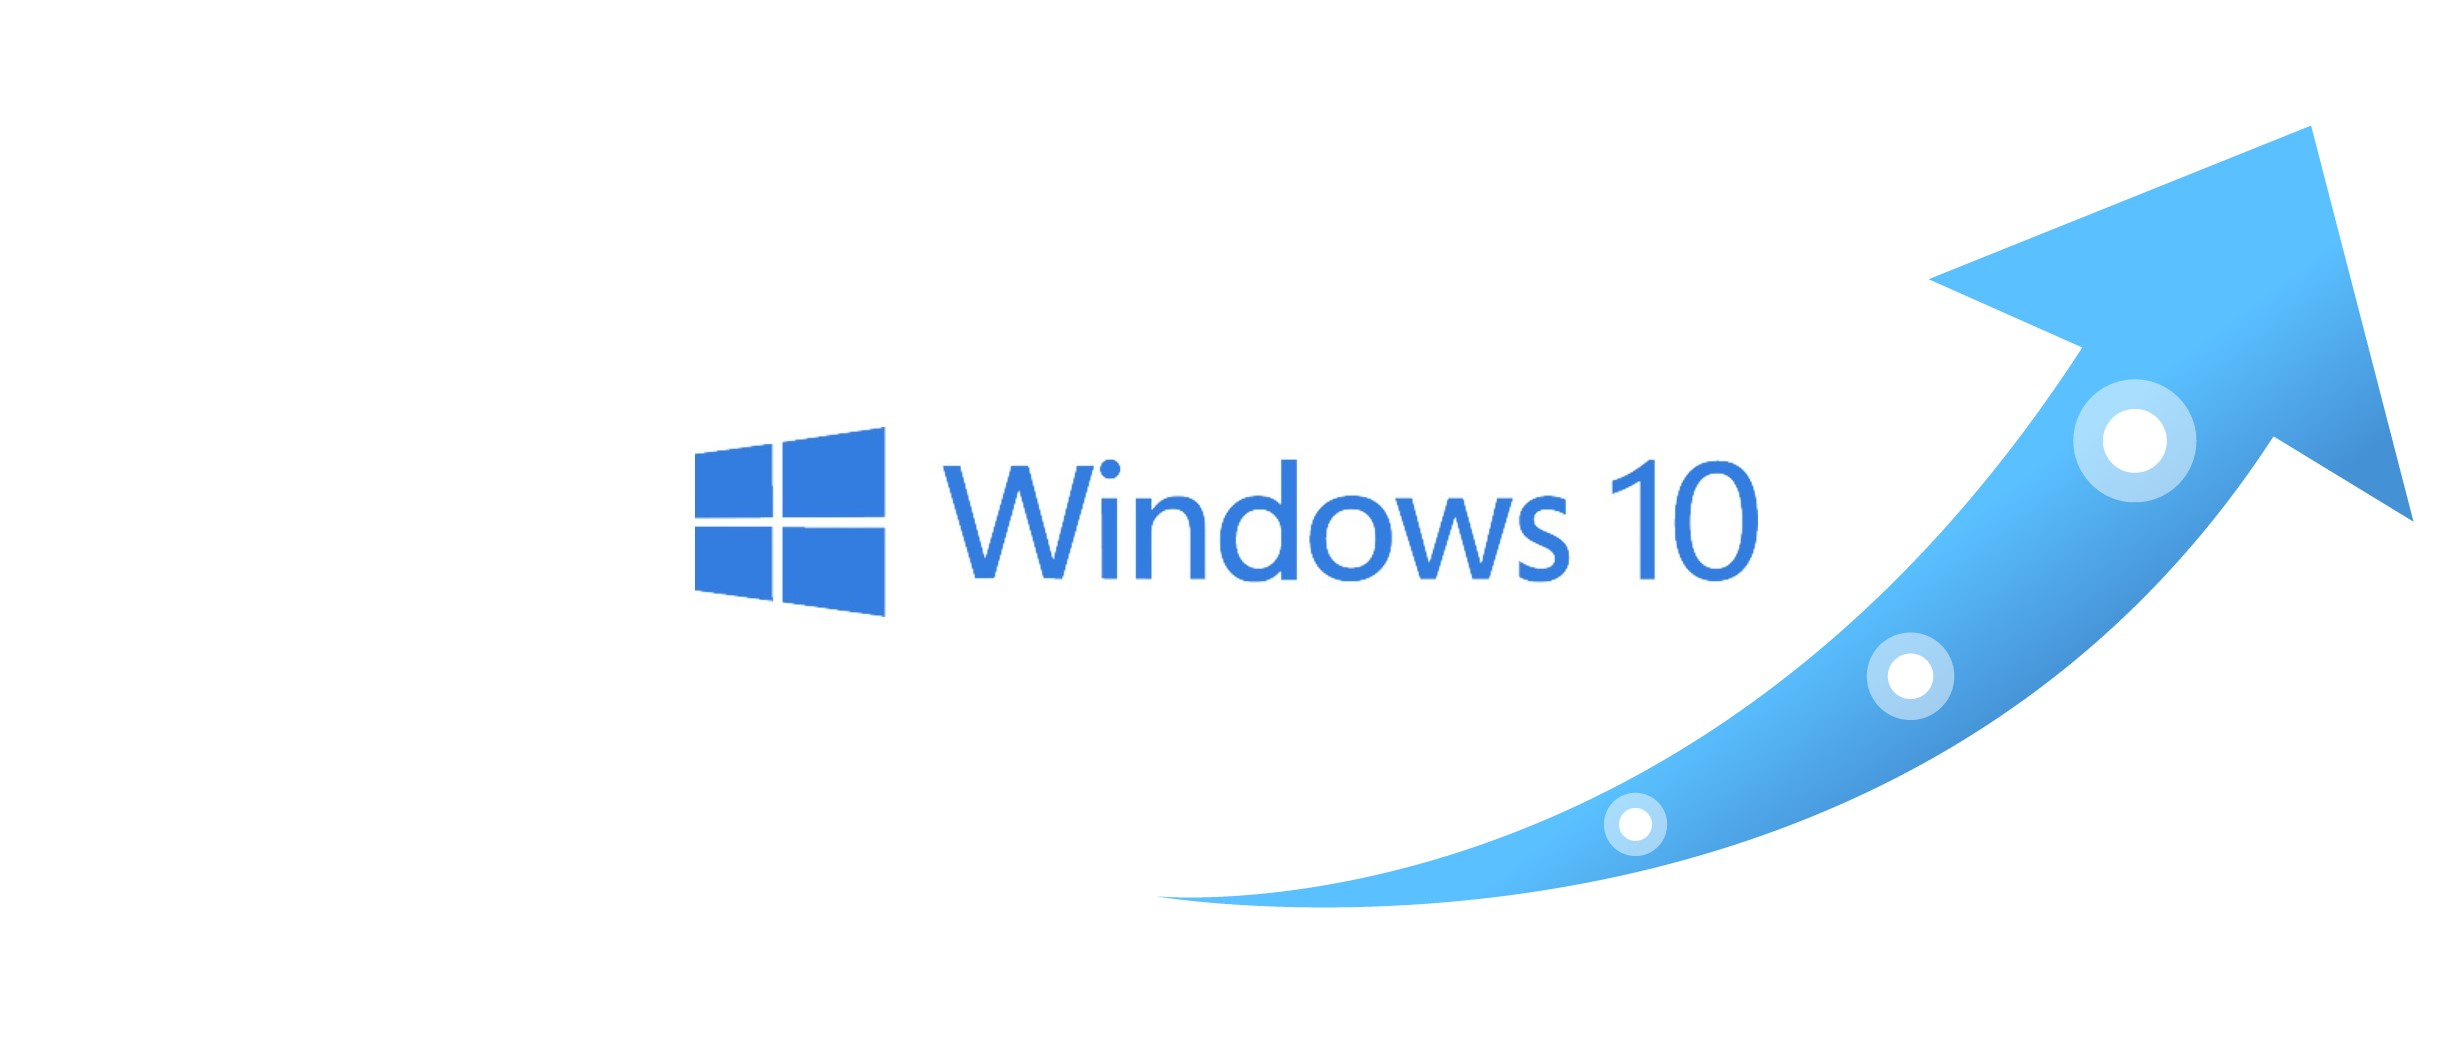 Windows 10 crescita marketshare